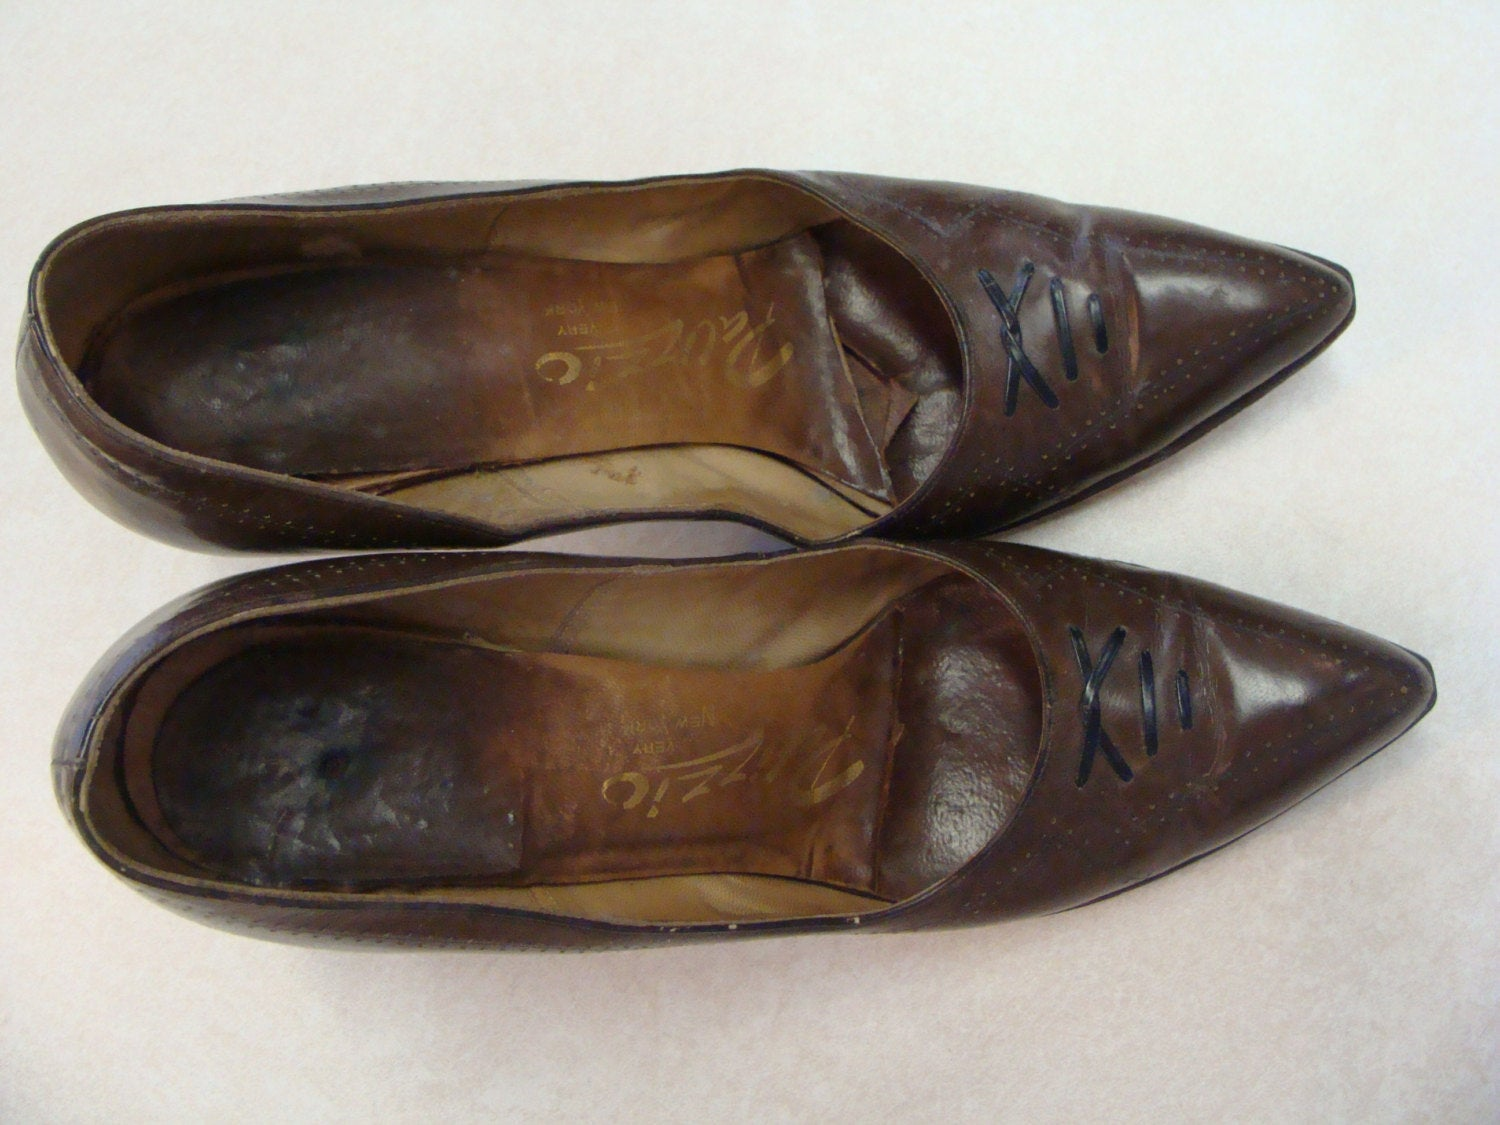 vintage PALIZZIO very new york KITTEN HEELS brown leather pumps 6 6.5 N (J1)